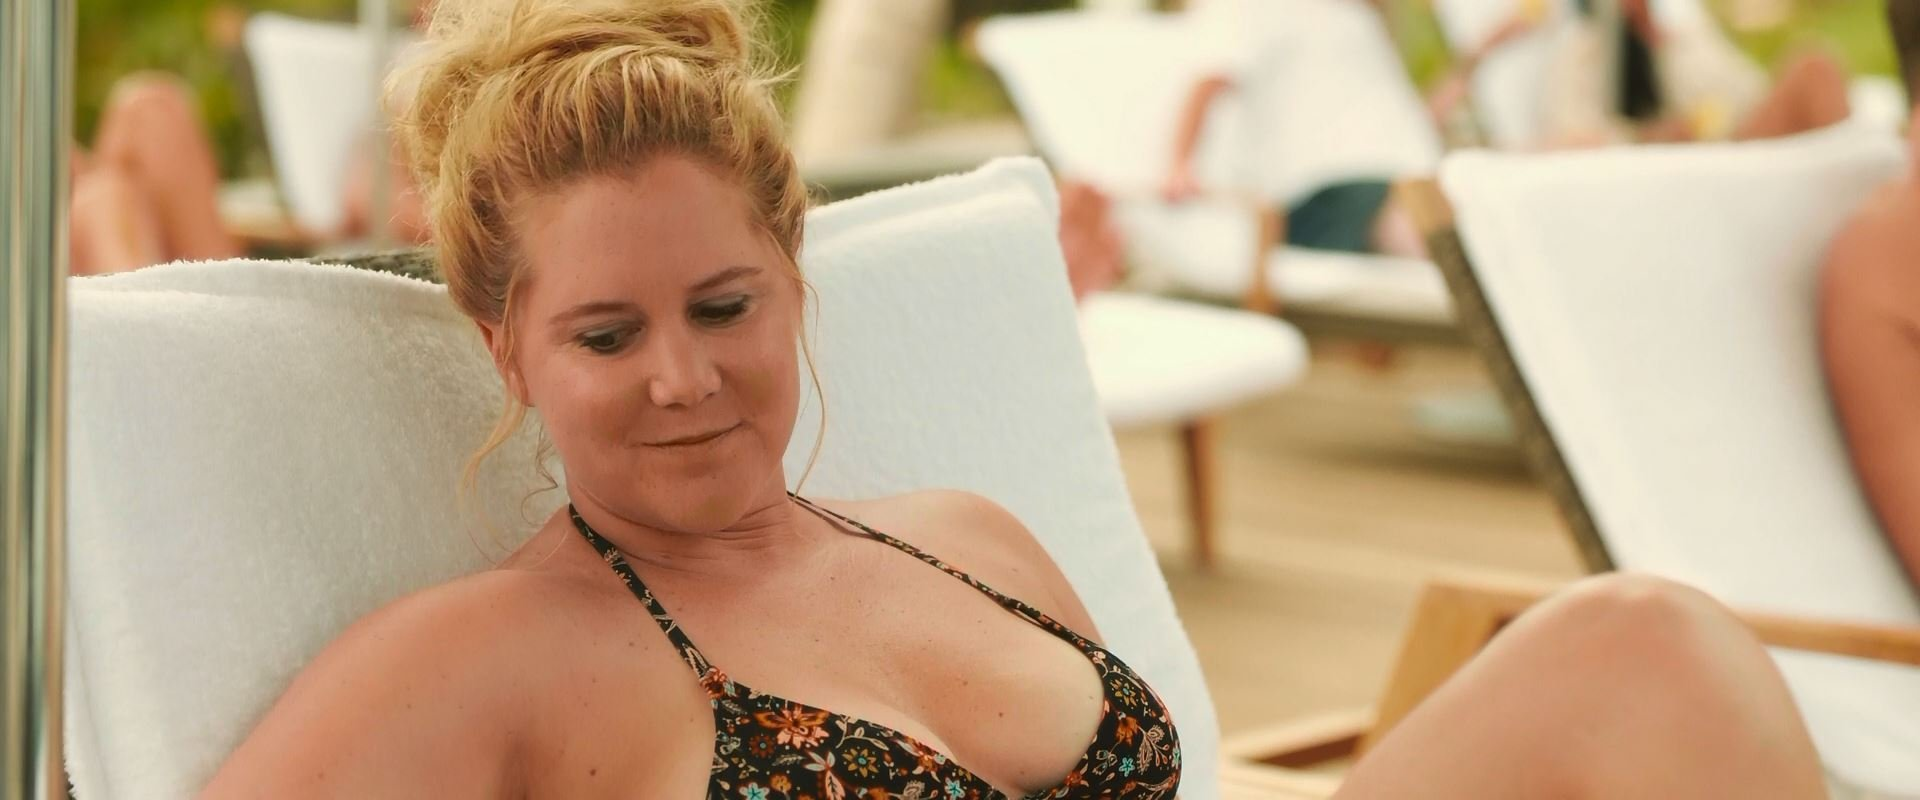 Amy schumer naked are